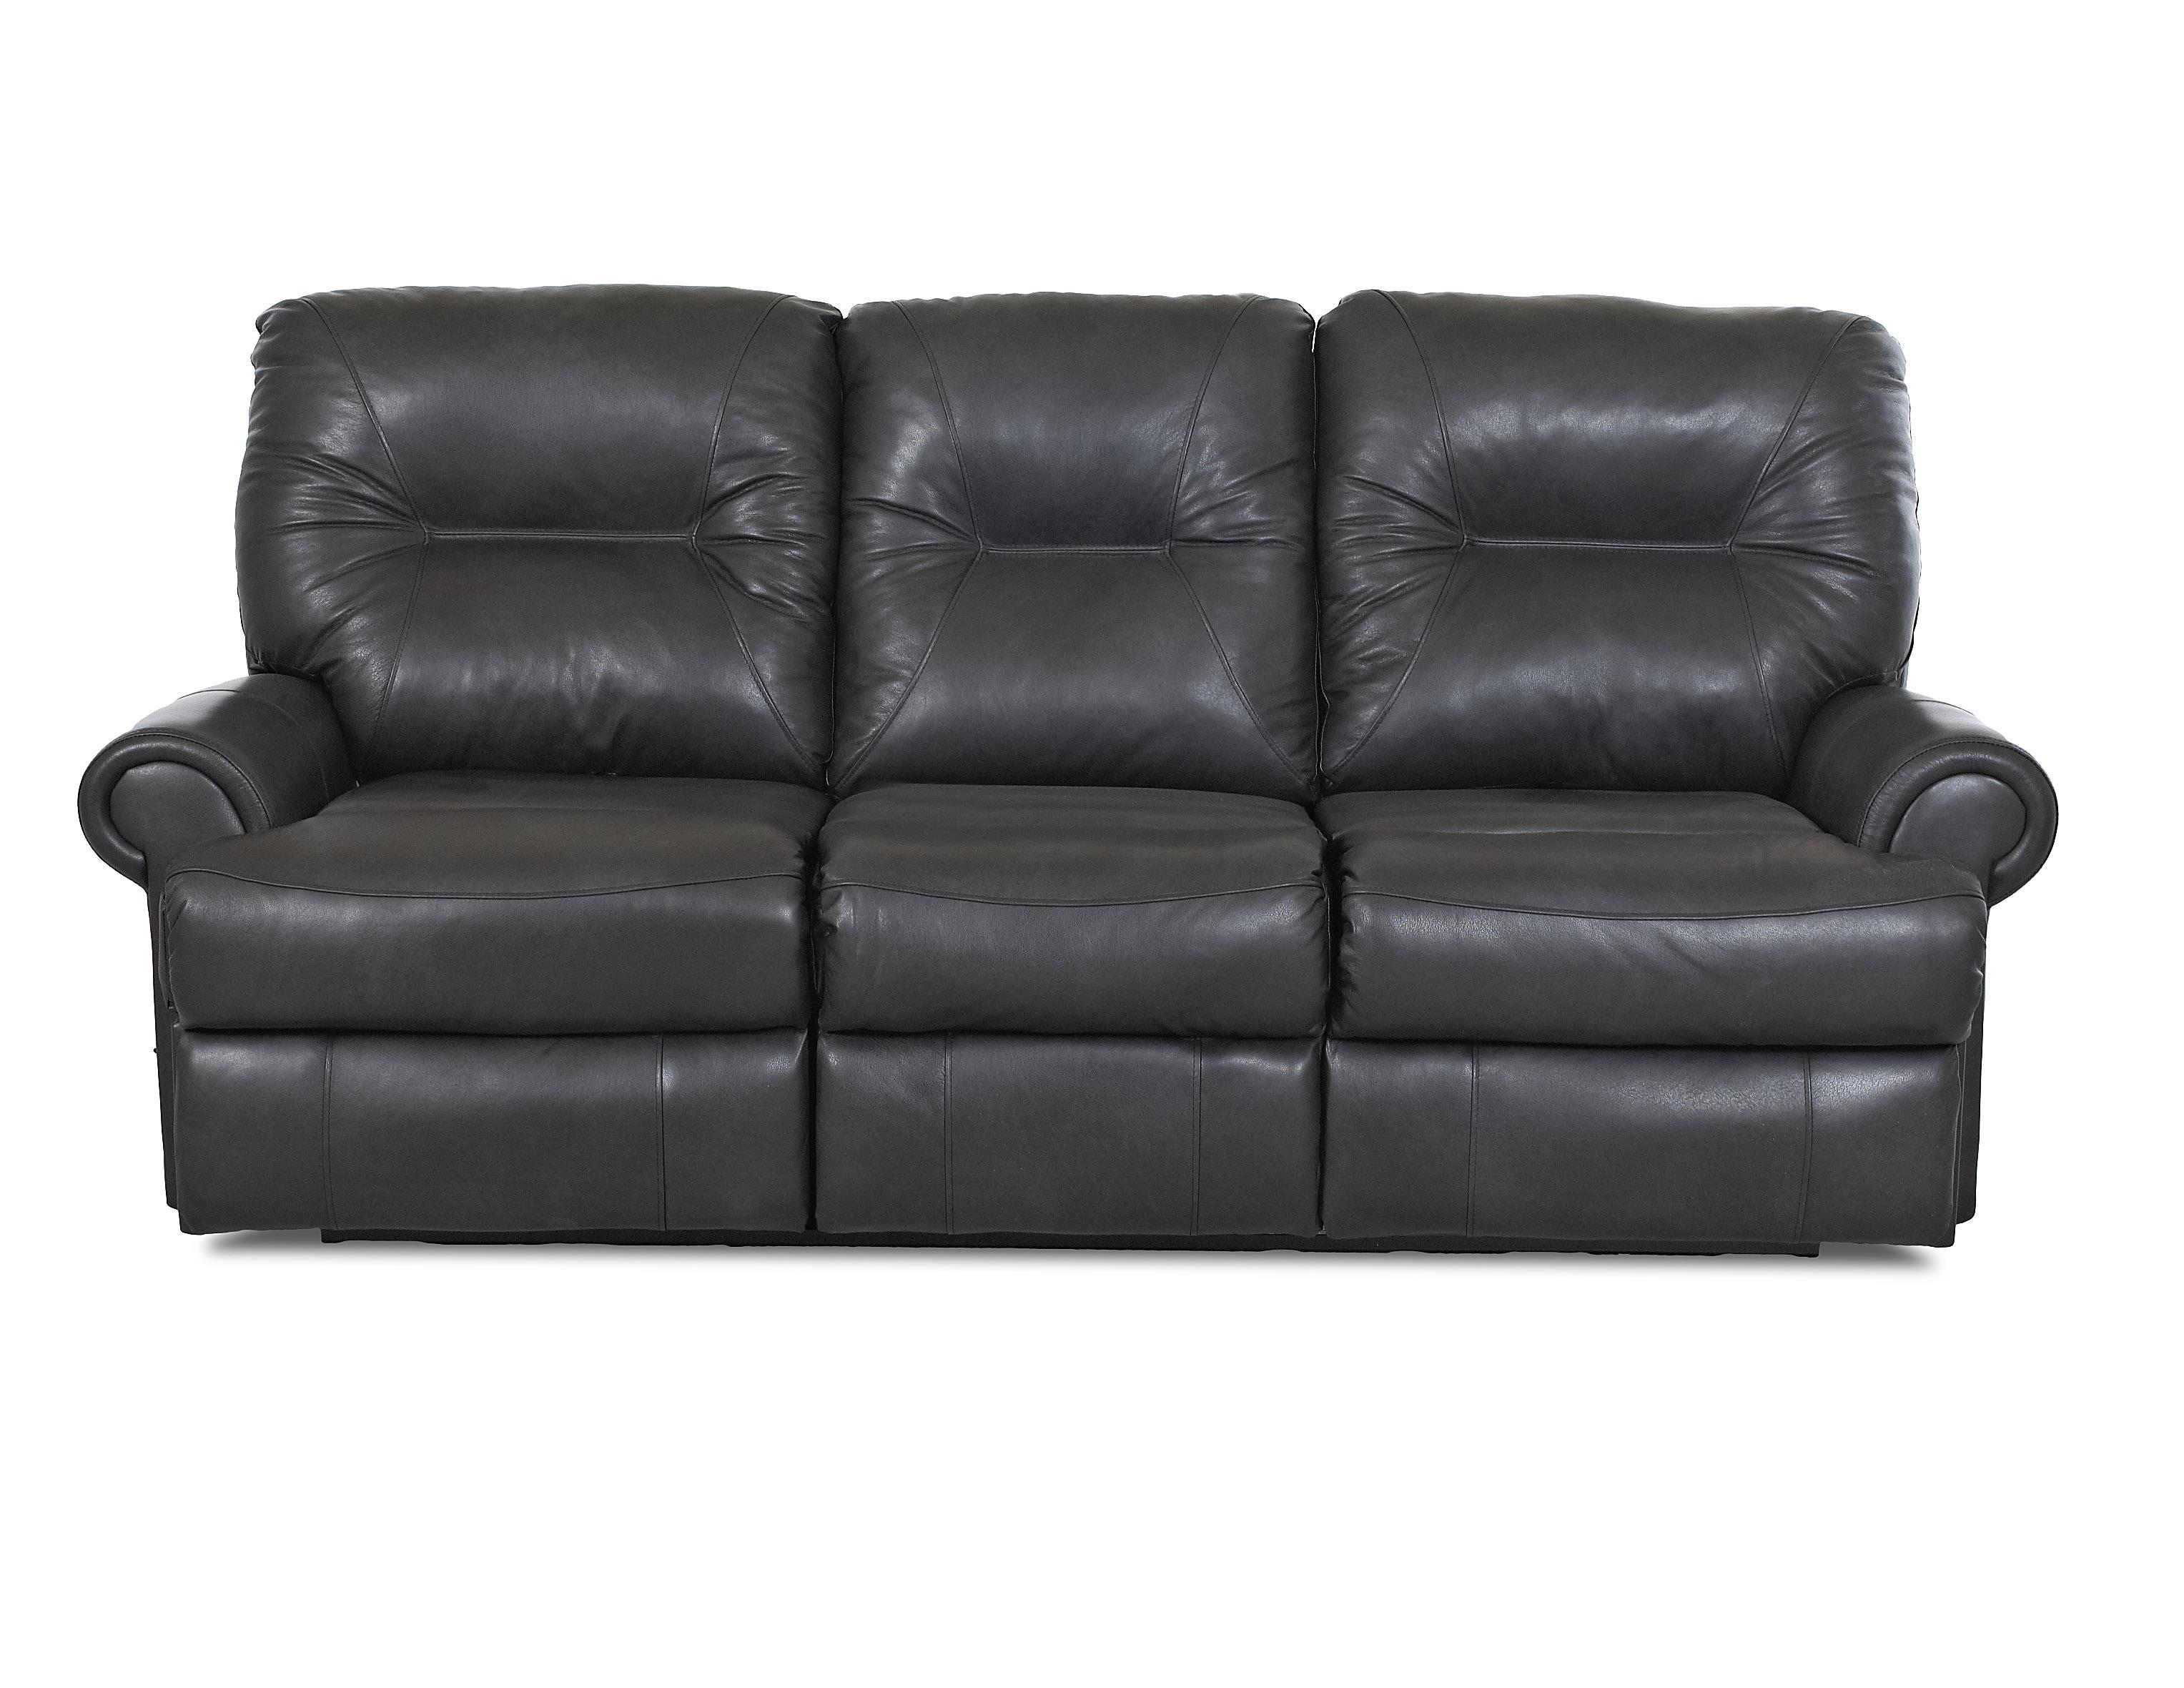 Klaussner Roadster Traditional Power Reclining Sofa - Item Number: LV25543 PWRS